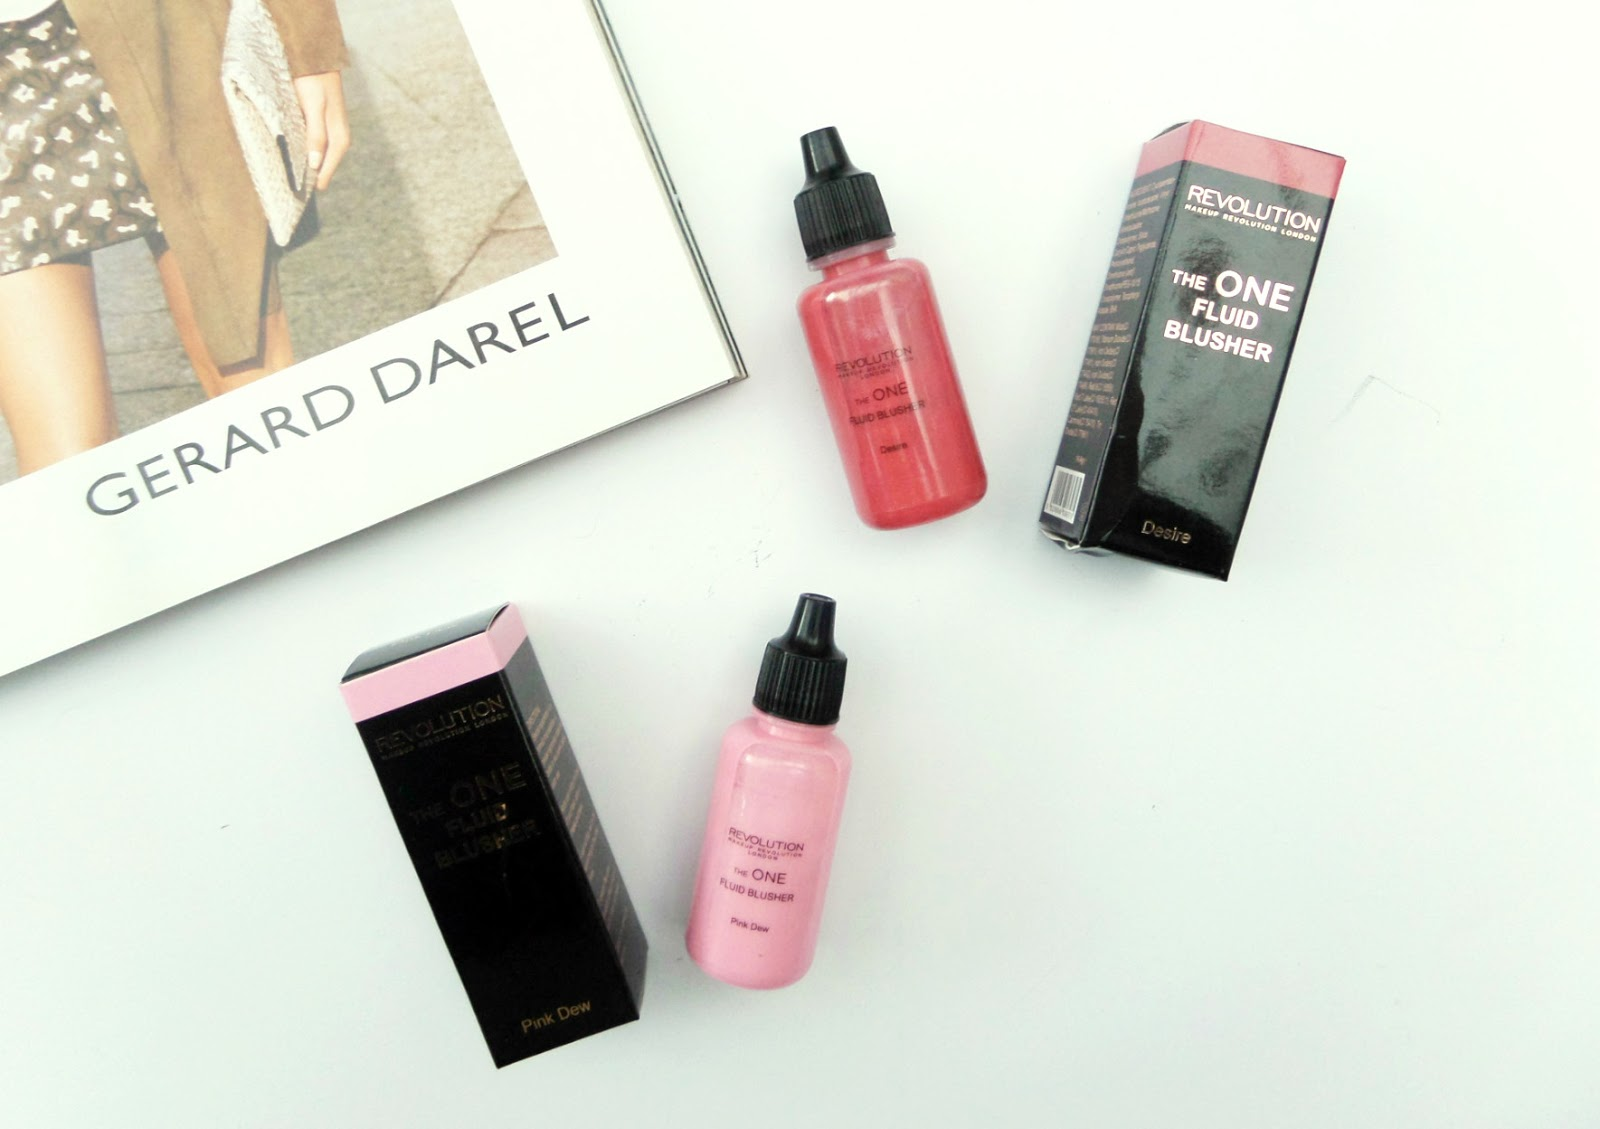 The Makeup Revolution The One Fluid Blushers Review